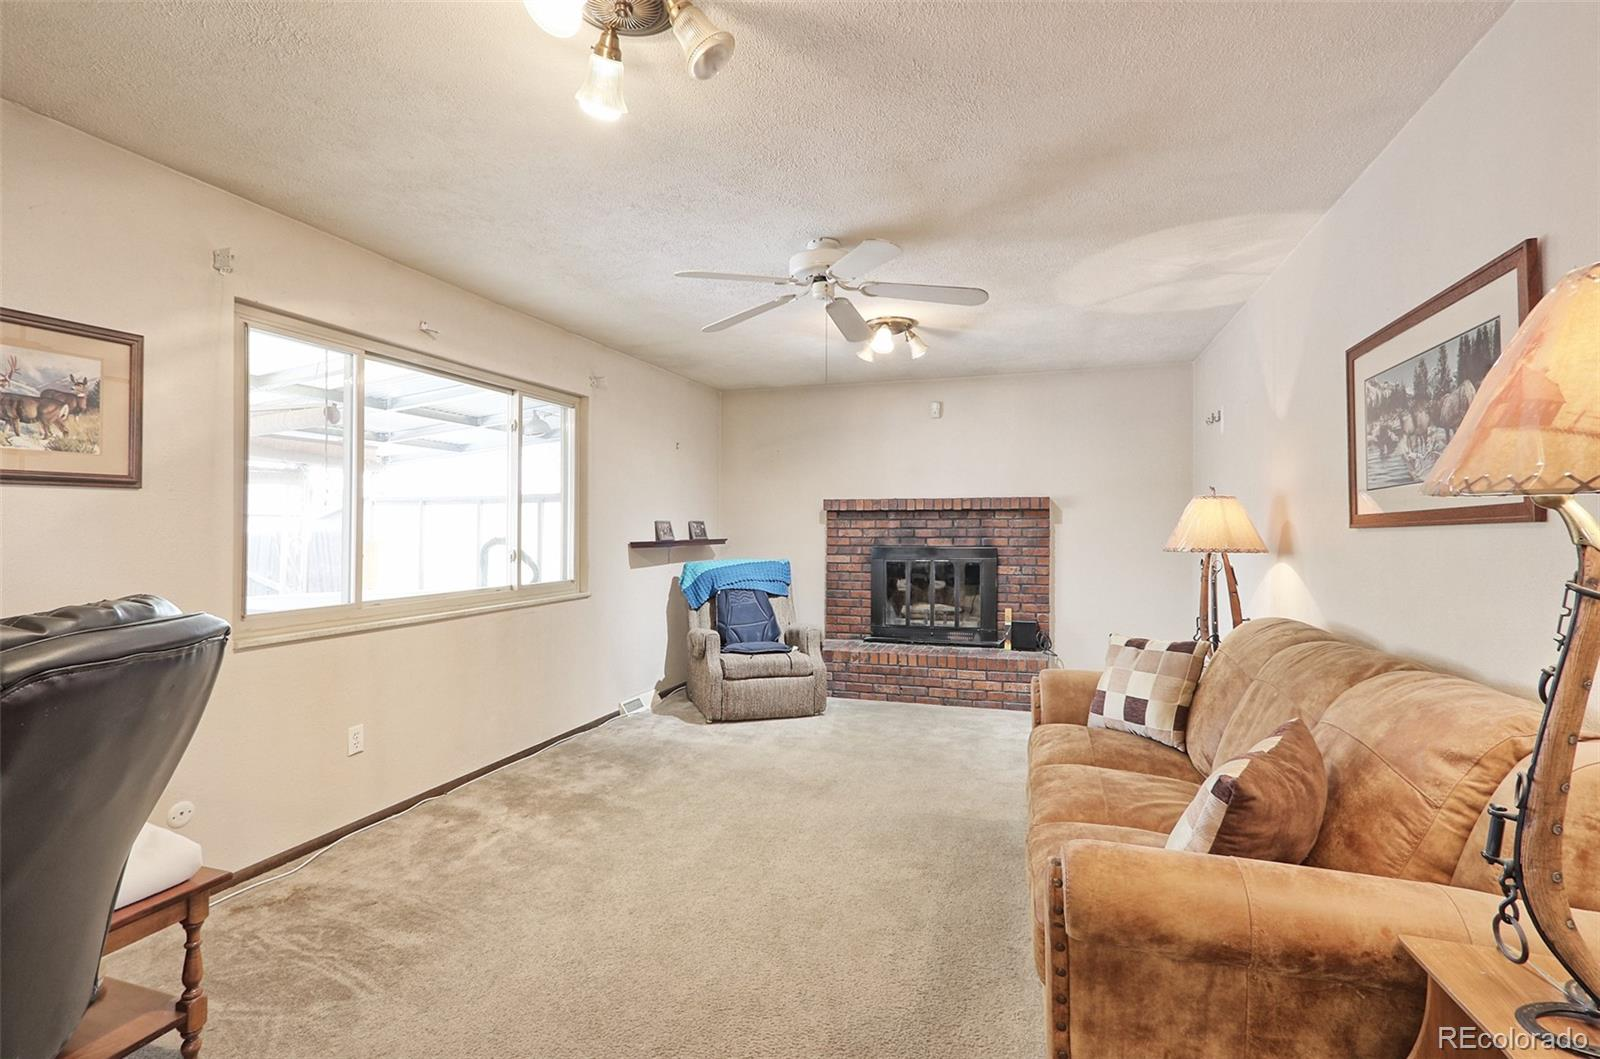 MLS# 2680395 - 4 - 4481 W 89th Way, Westminster, CO 80031